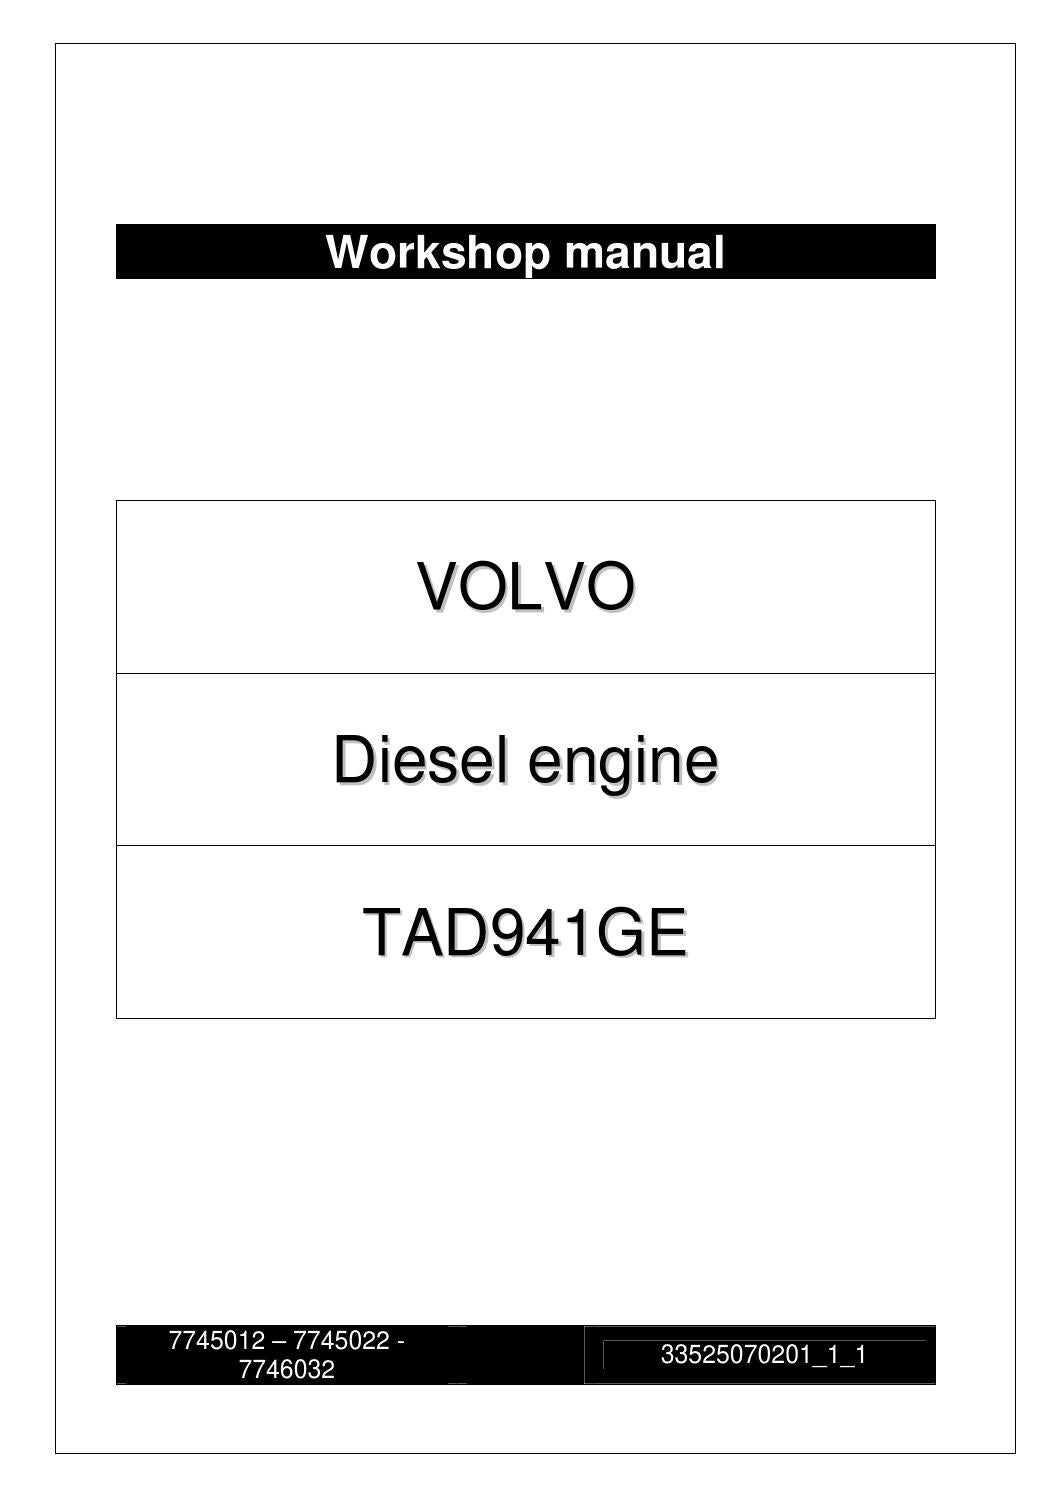 hight resolution of  page 1 workshop manual volvo tad941ge engine by power generation issuu at cita asia volvo penta oxi engine wiring schematic